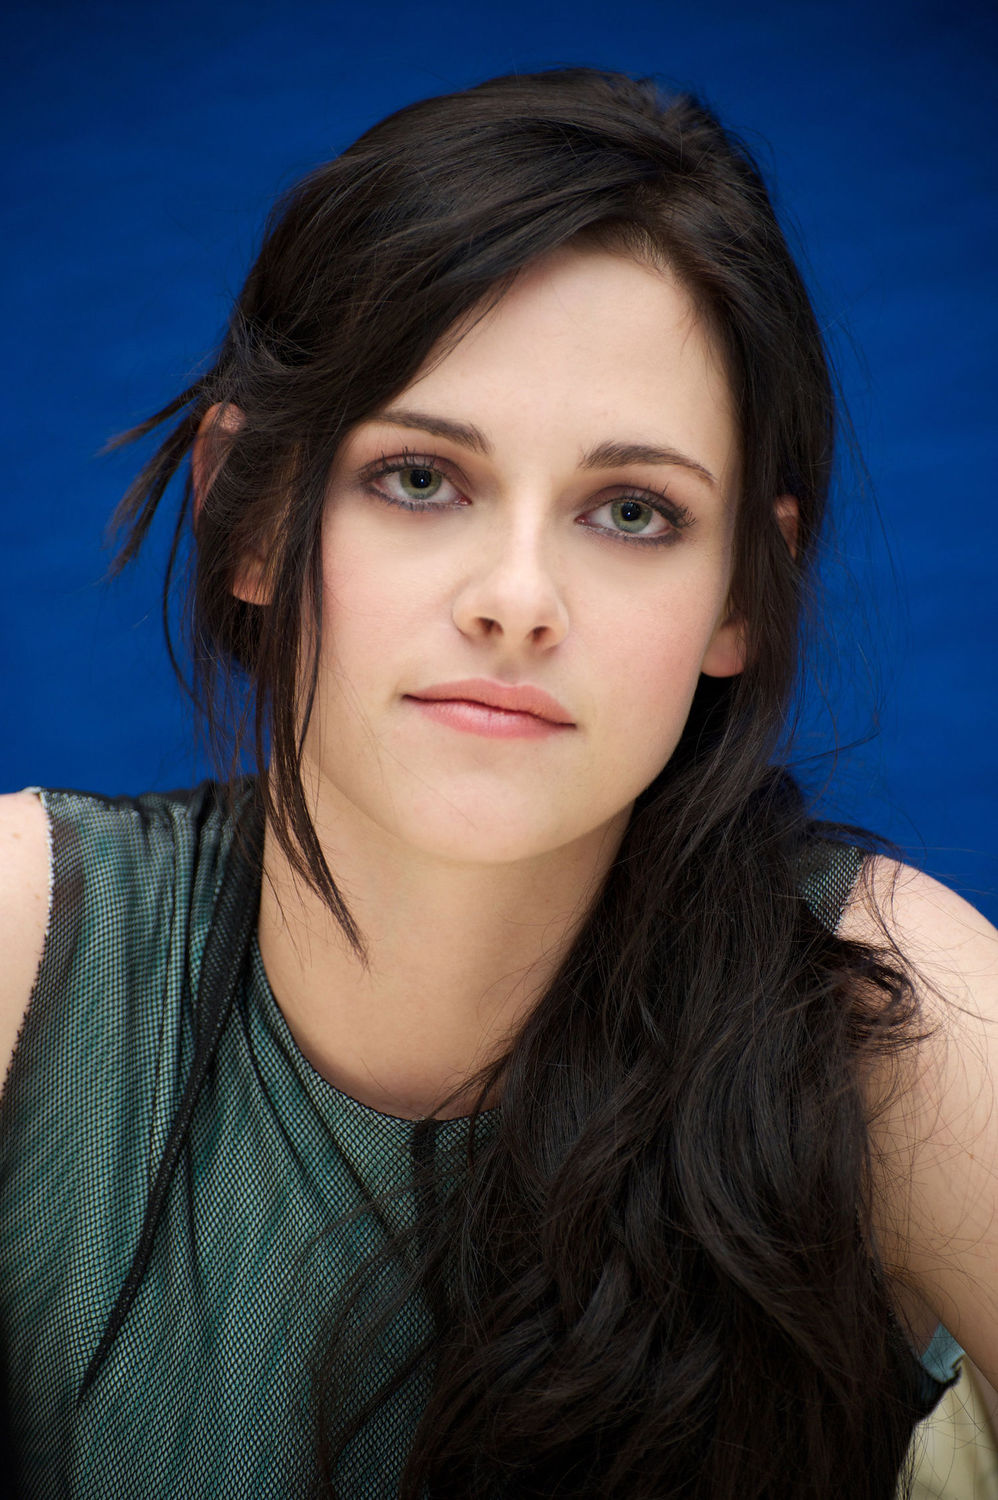 Kristen Stewart Favorite Things Color Bands Food Sports